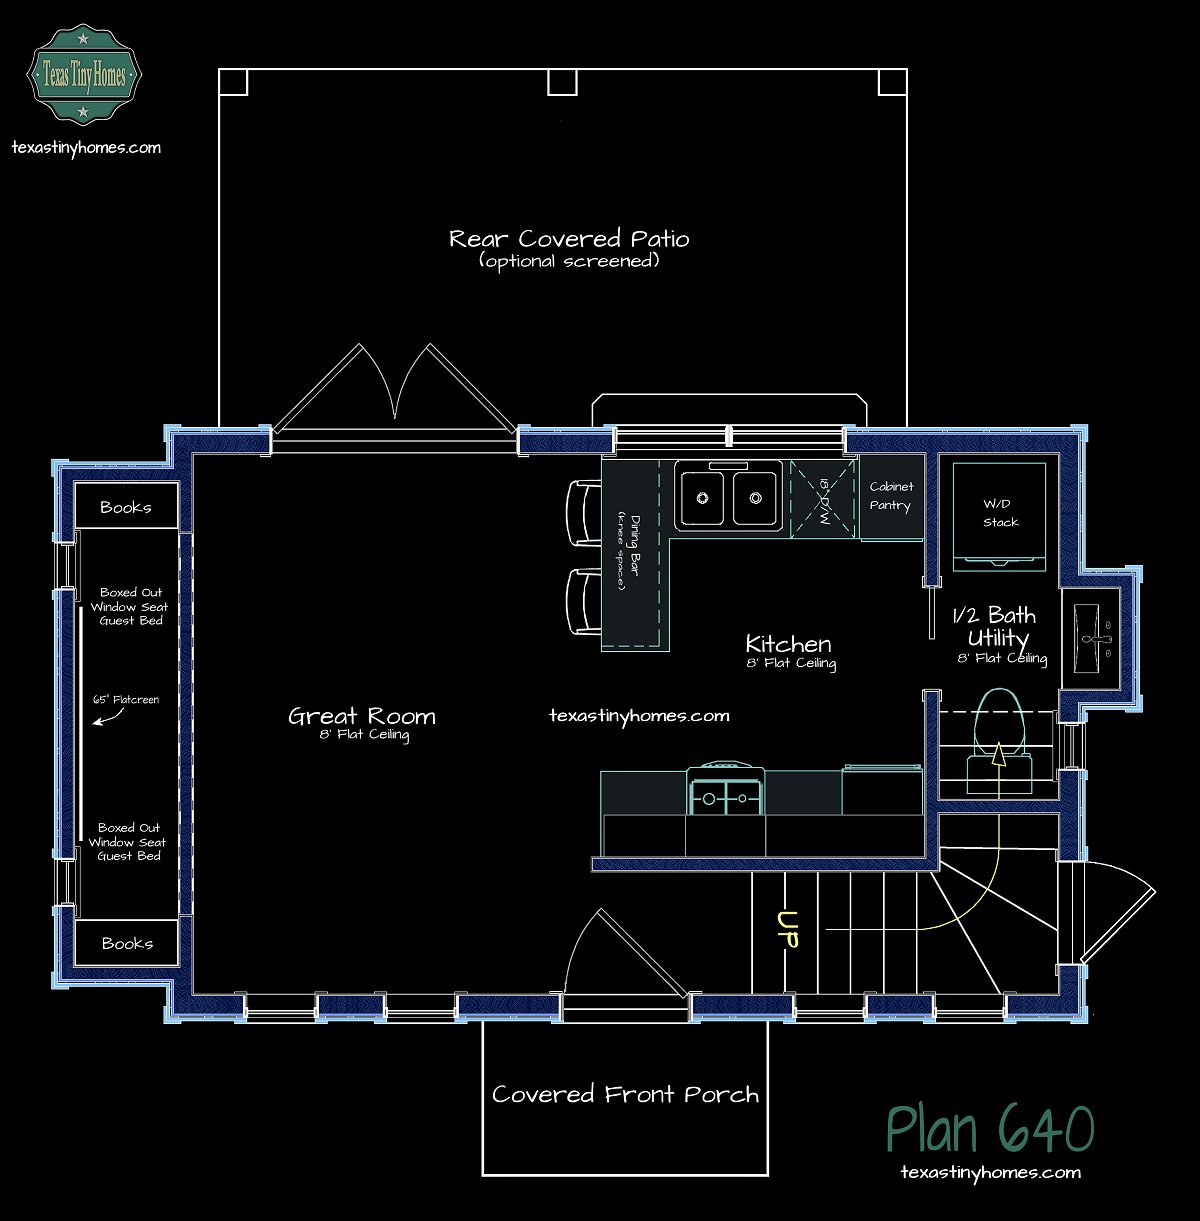 Small luxury homes, super energy efficient homes. off grid cabins, off grid homes, colorado mountain cabins, mountain cabin plans